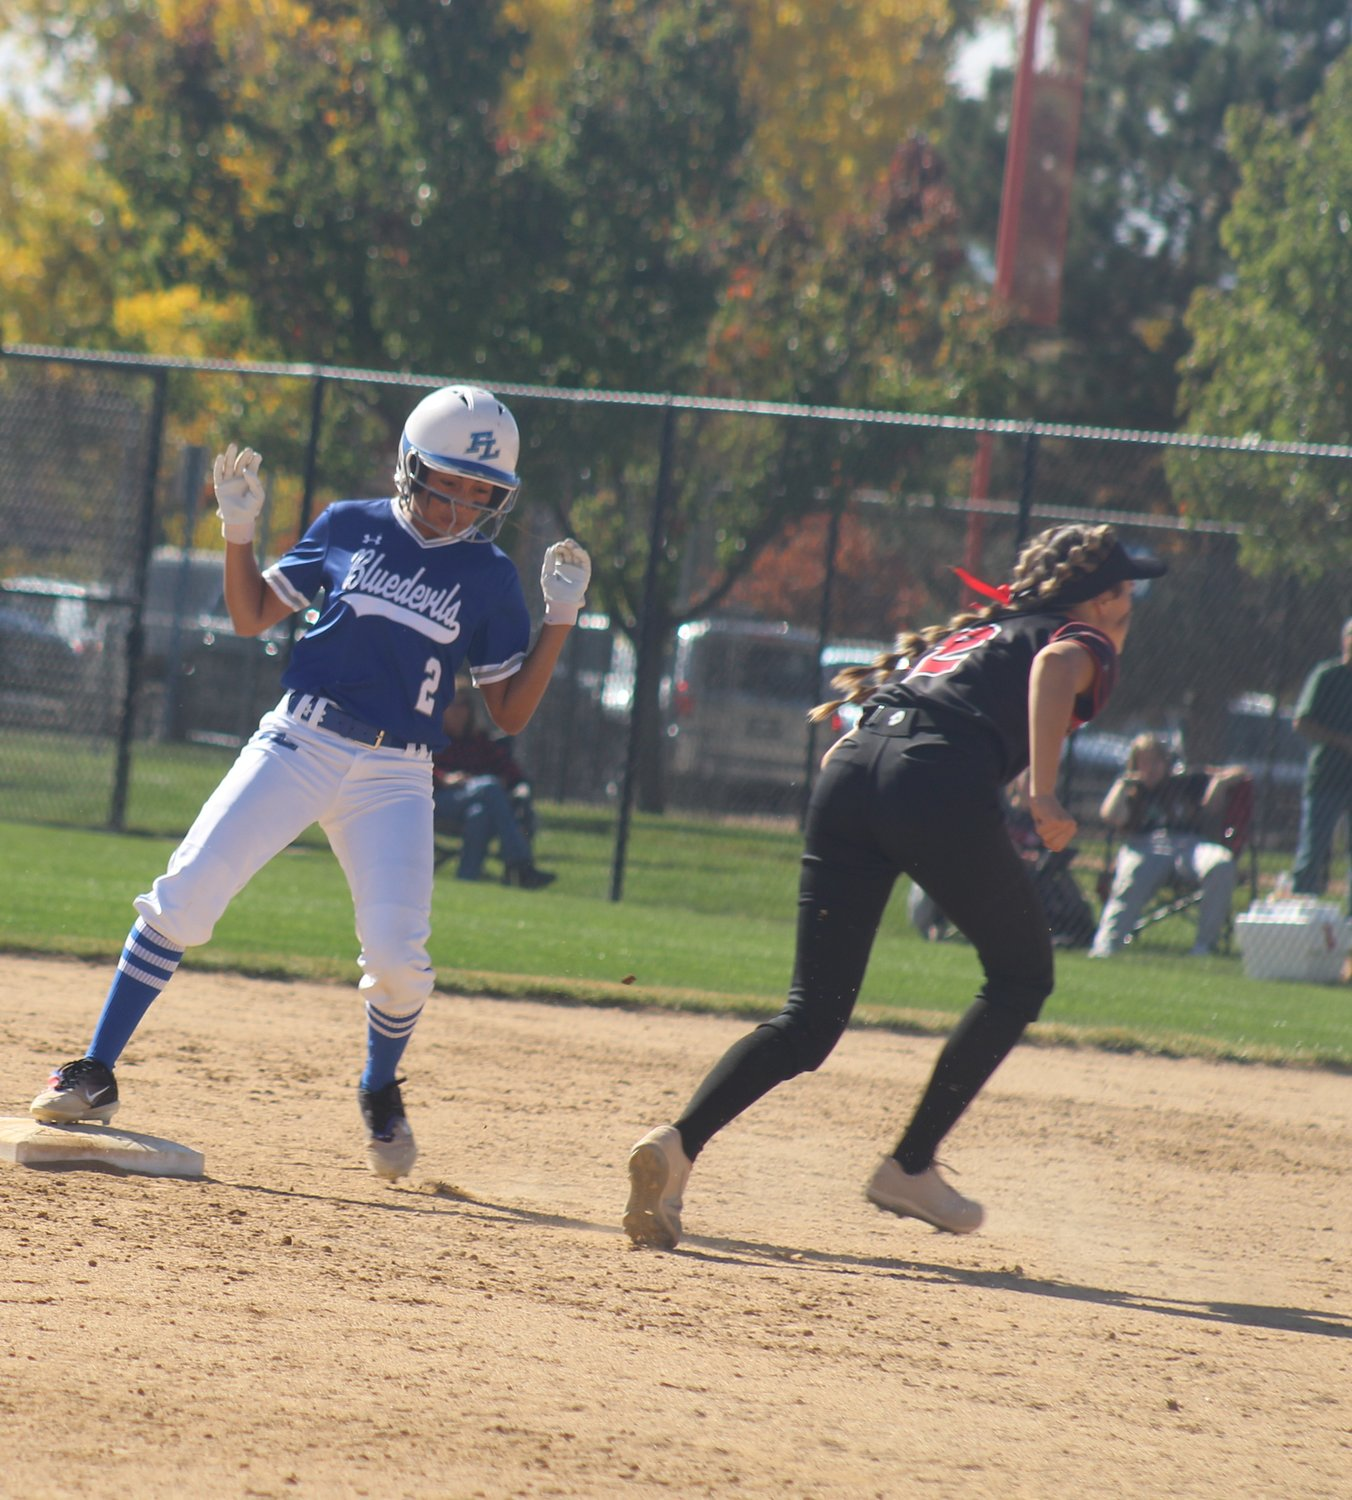 Fort Lupton's Rylee Balcazar gets into second base as avoids Strasburg shortstop Graecyn Graf in the process during the first round of the state 3A softball tournament Oct. 22 at Aurora Sports Park.